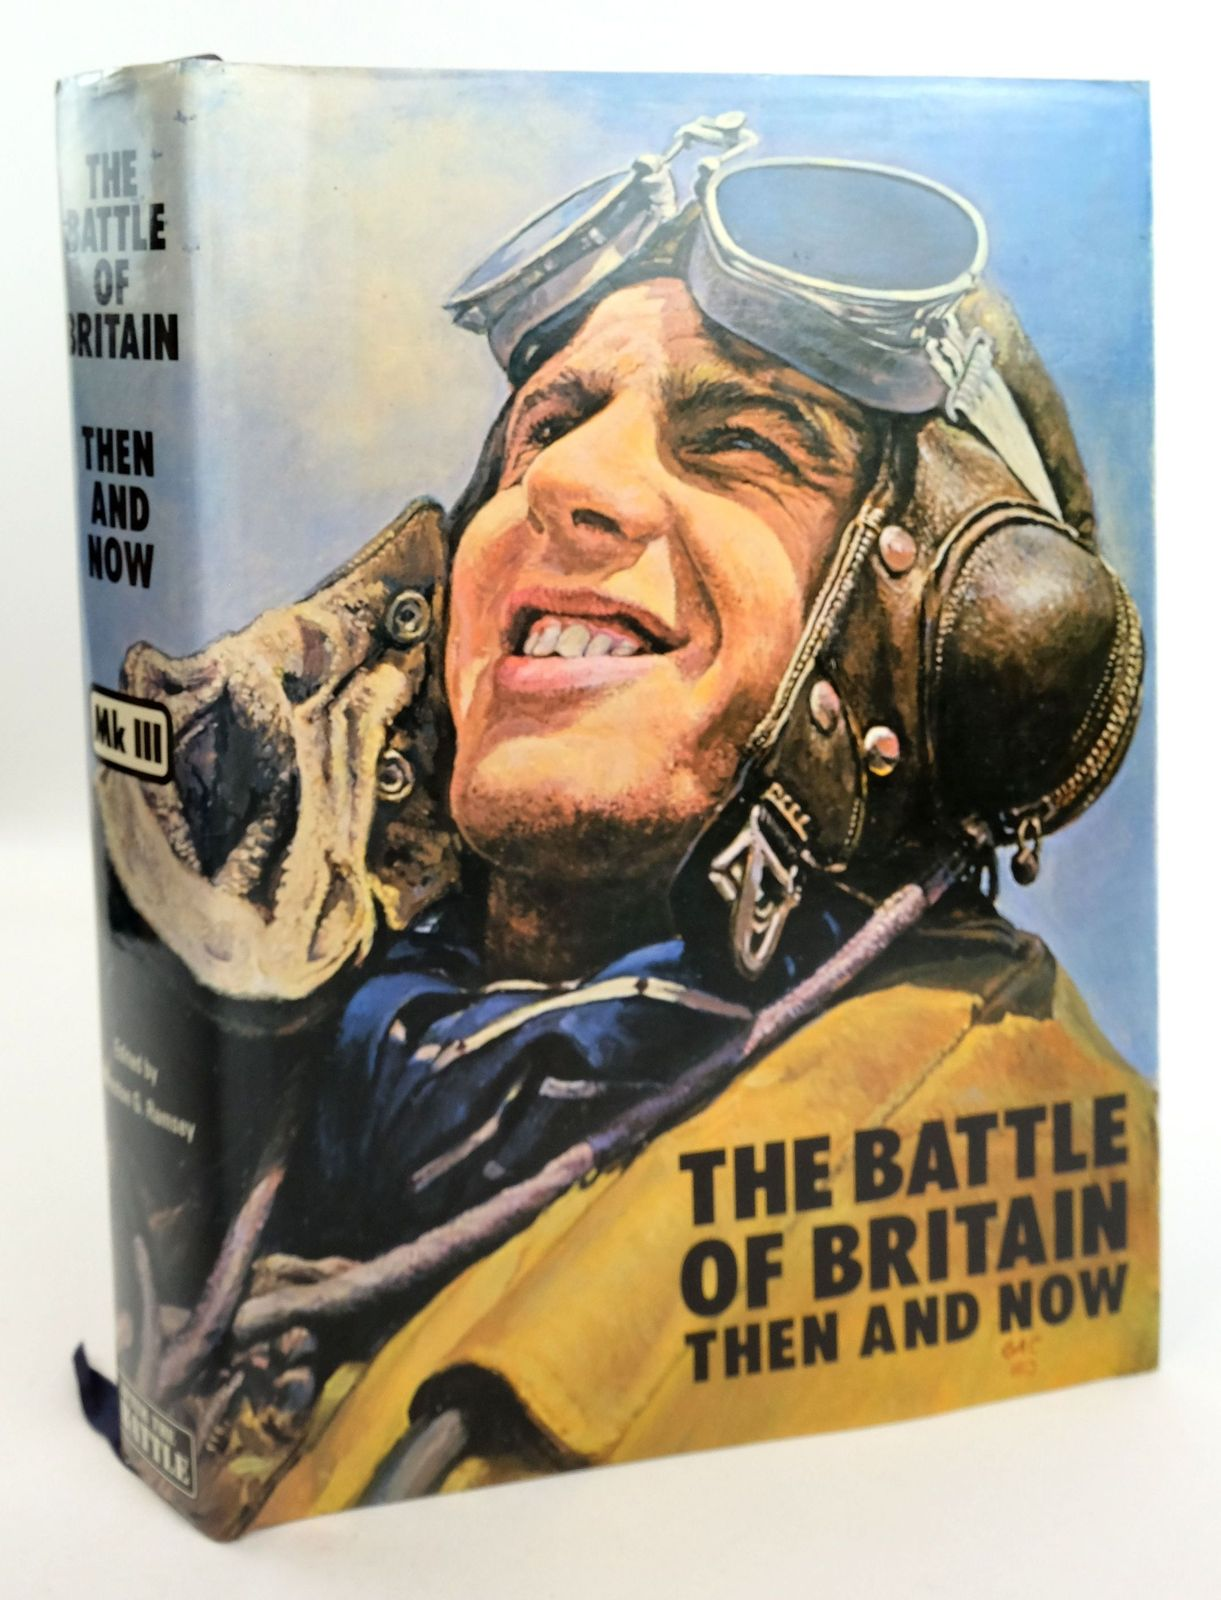 Photo of THE BATTLE OF BRITAIN THEN AND NOW written by Ramsey, Winston G. published by Battle of Britain Prints International Ltd. (STOCK CODE: 1819433)  for sale by Stella & Rose's Books